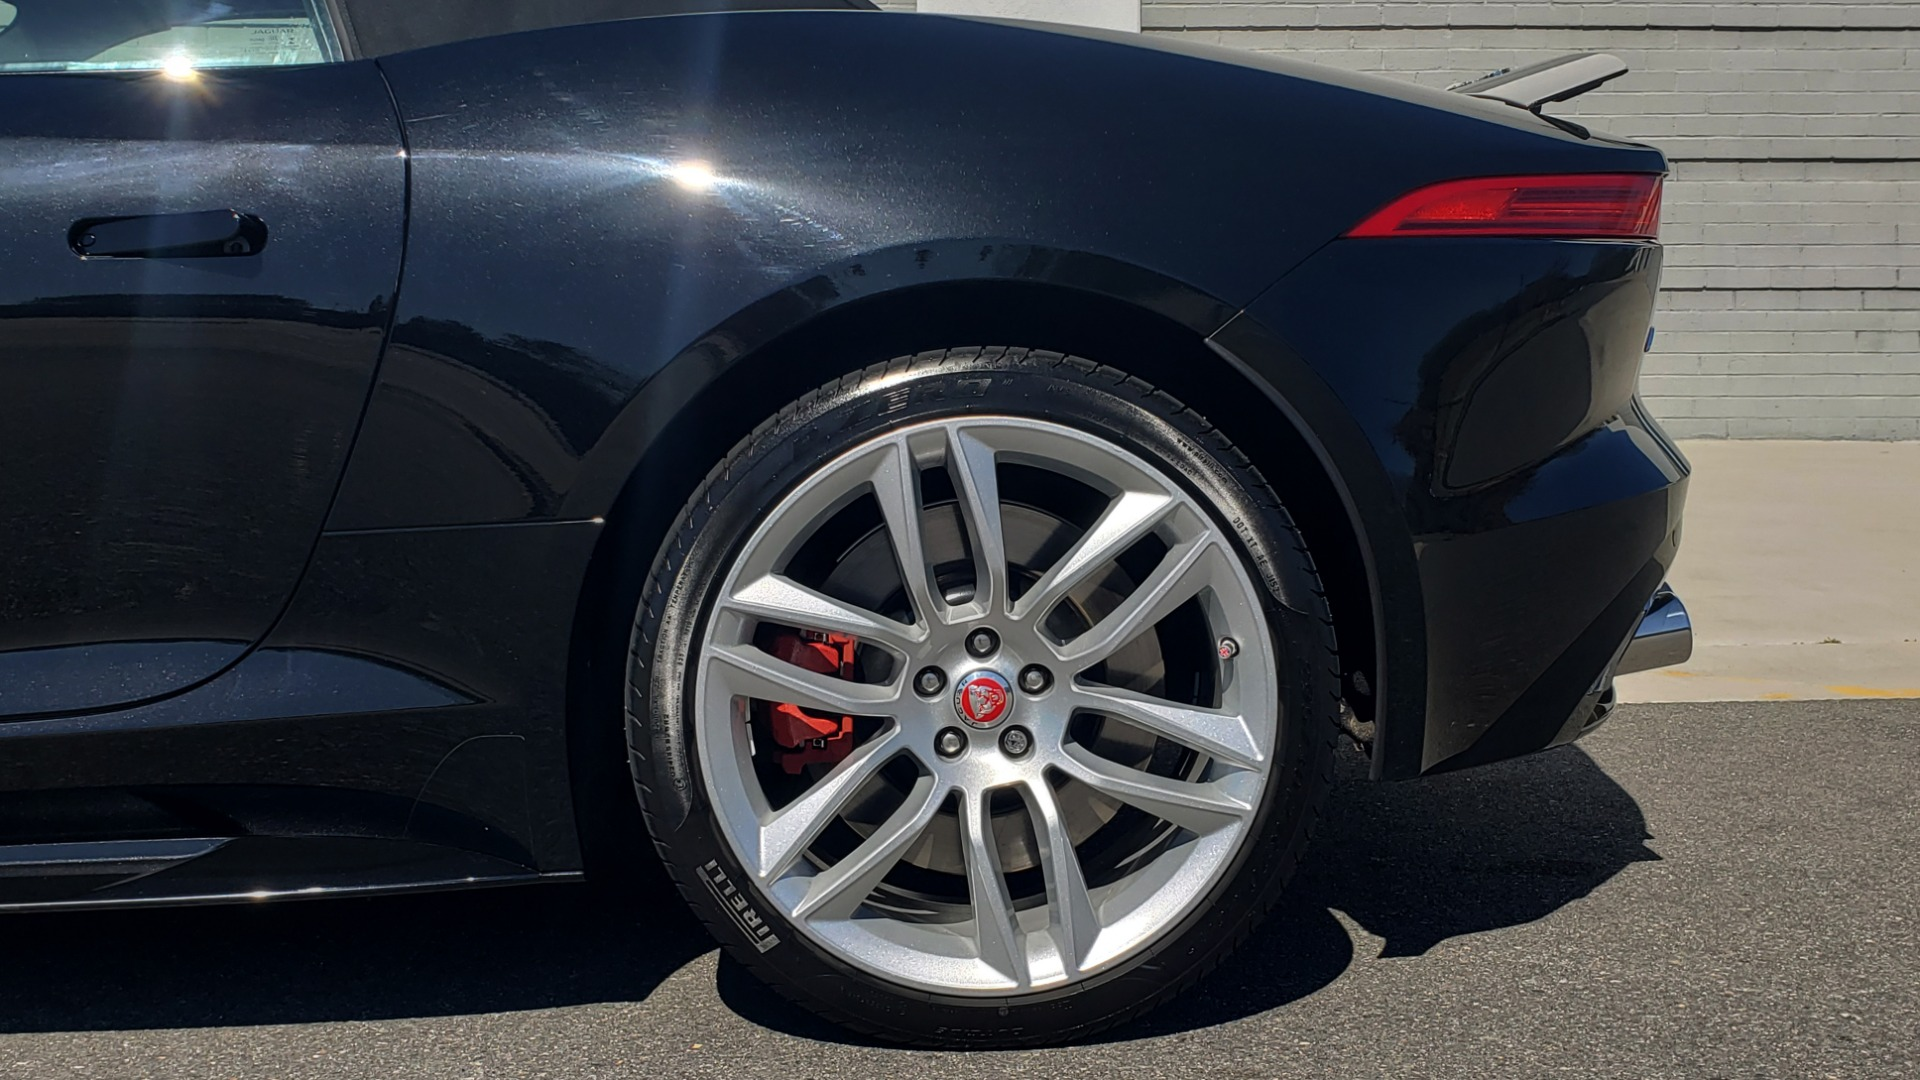 Used 2016 Jaguar F-TYPE R CONVERTIBLE / SC 5.0L 550HP / VISION PACK 3 / BSM / REARVIEW for sale $63,000 at Formula Imports in Charlotte NC 28227 45